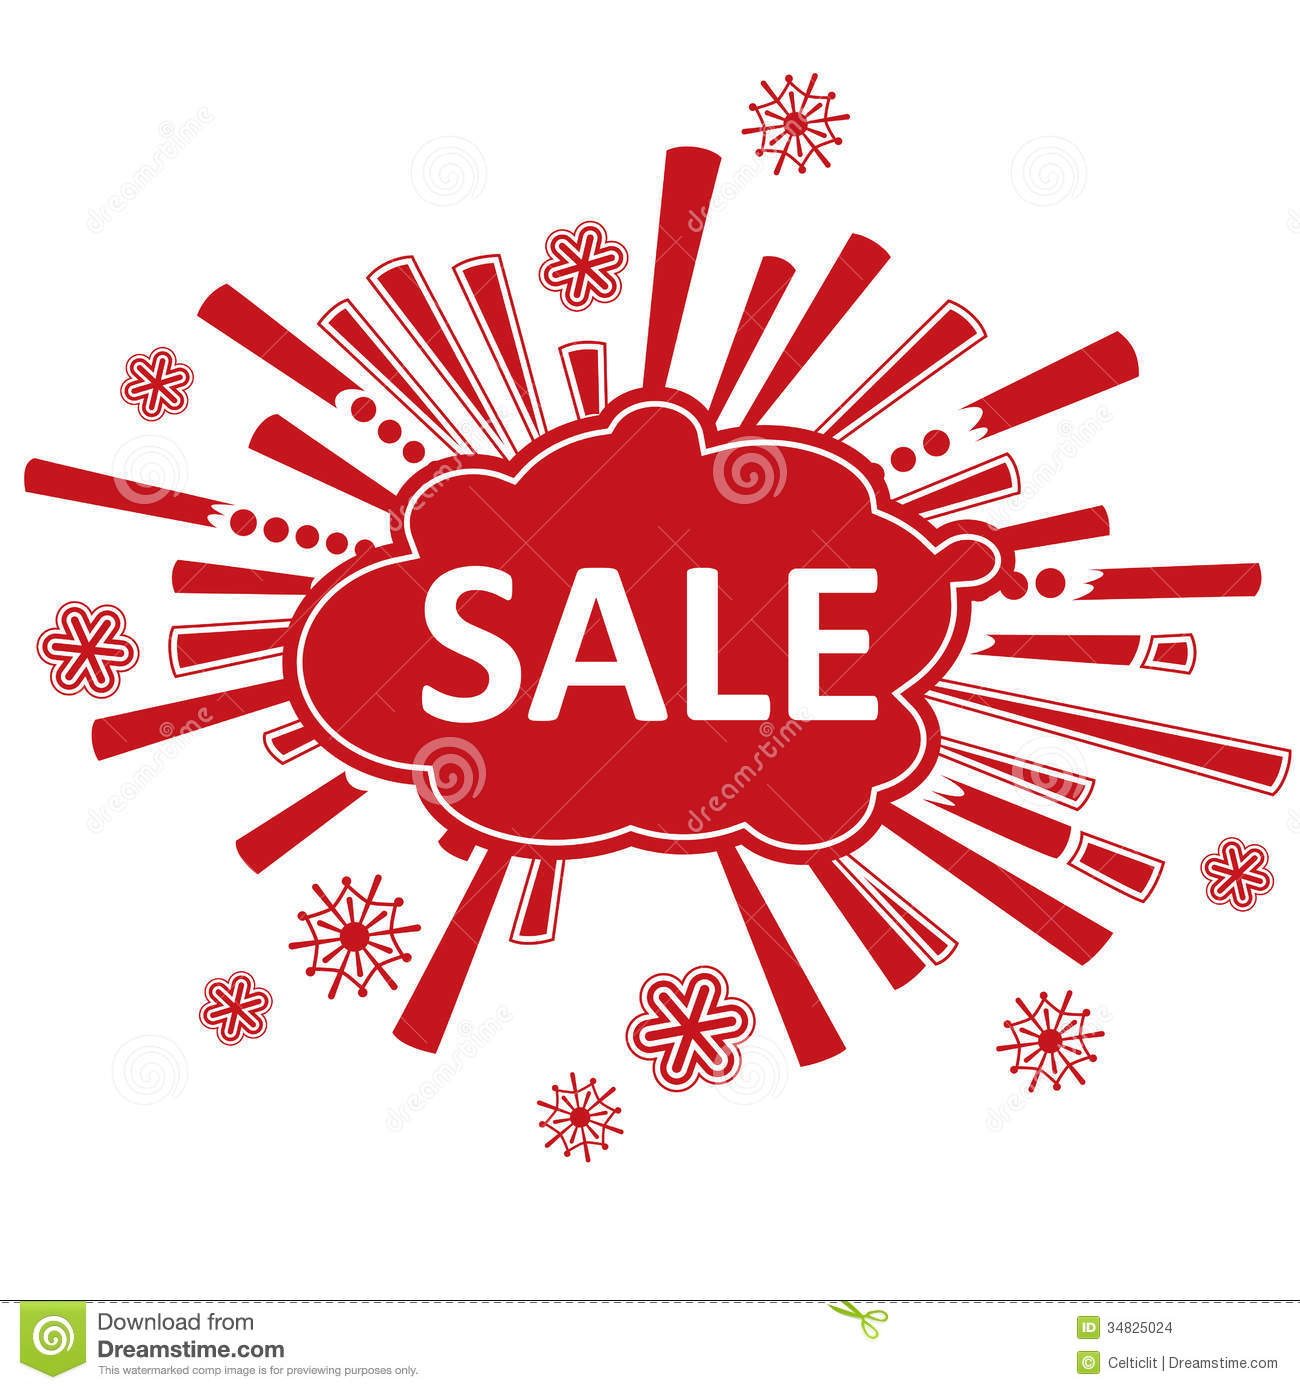 Sale: Christmas Sale Design Stock Vector. Illustration Of Store